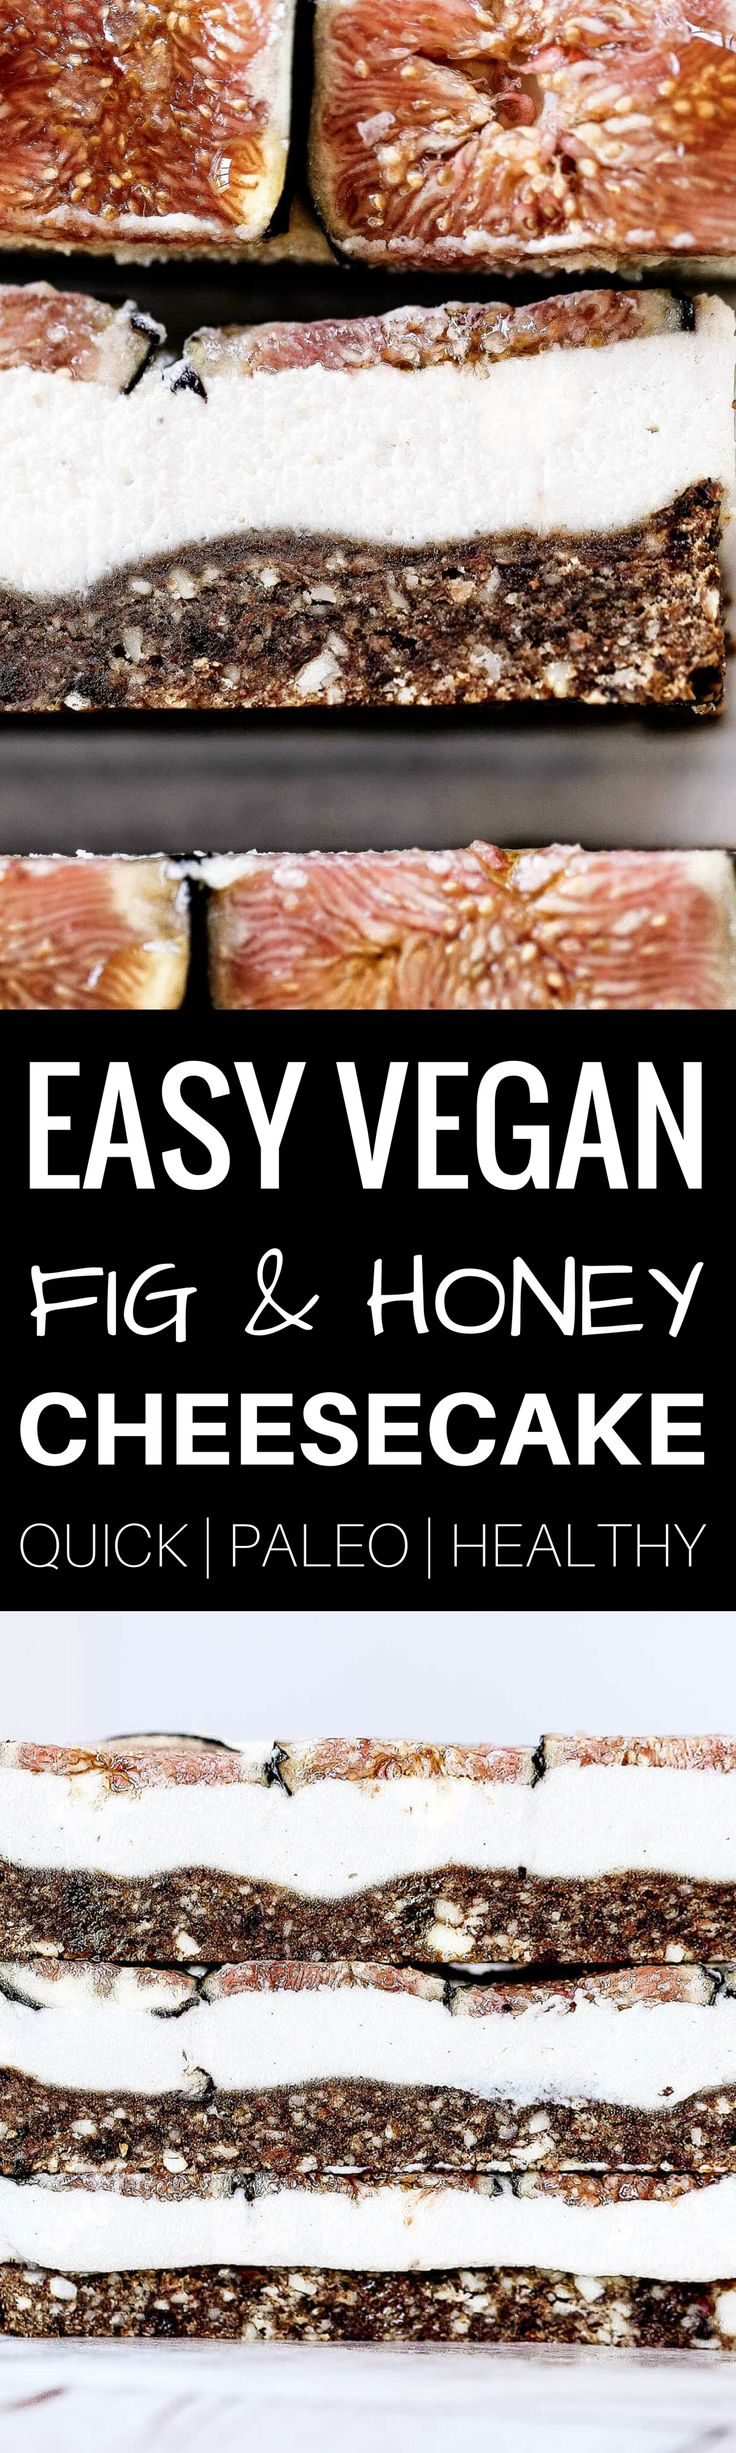 """Easy vegan paleo fig and honey cheesecake with a delicious crisp """"graham cracker"""" crust. Gluten free and so super easy to make! Freezer friendly."""